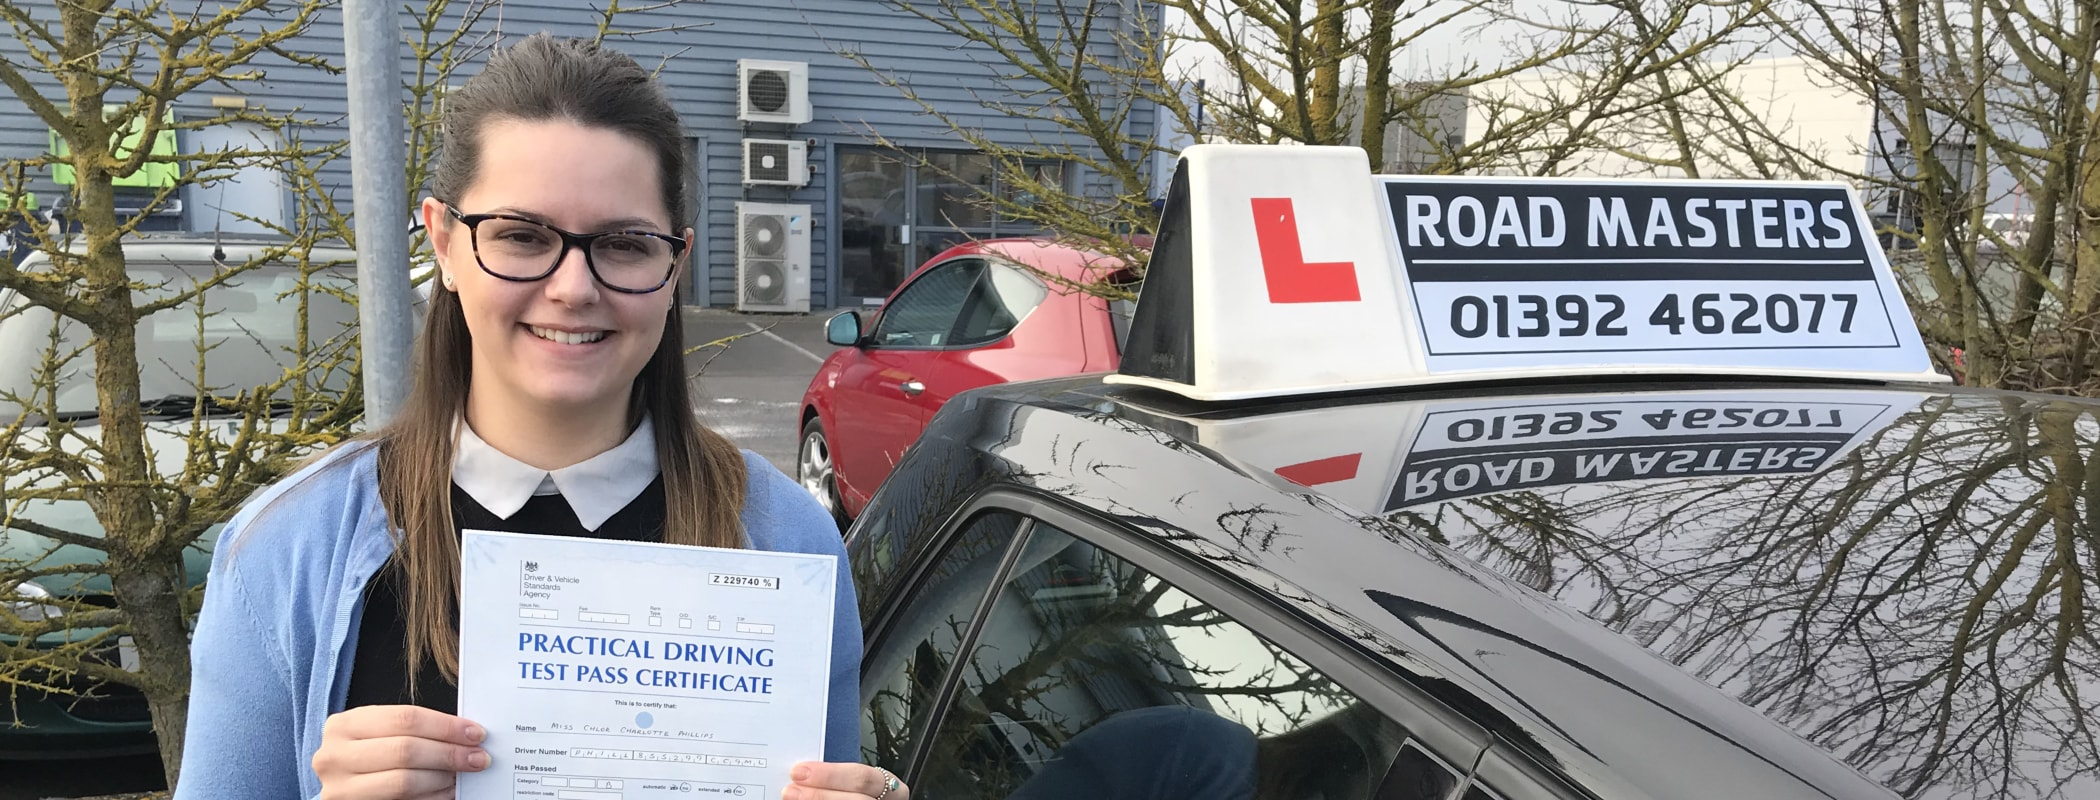 Driving lessons Newton Abbot from £33 /hr*